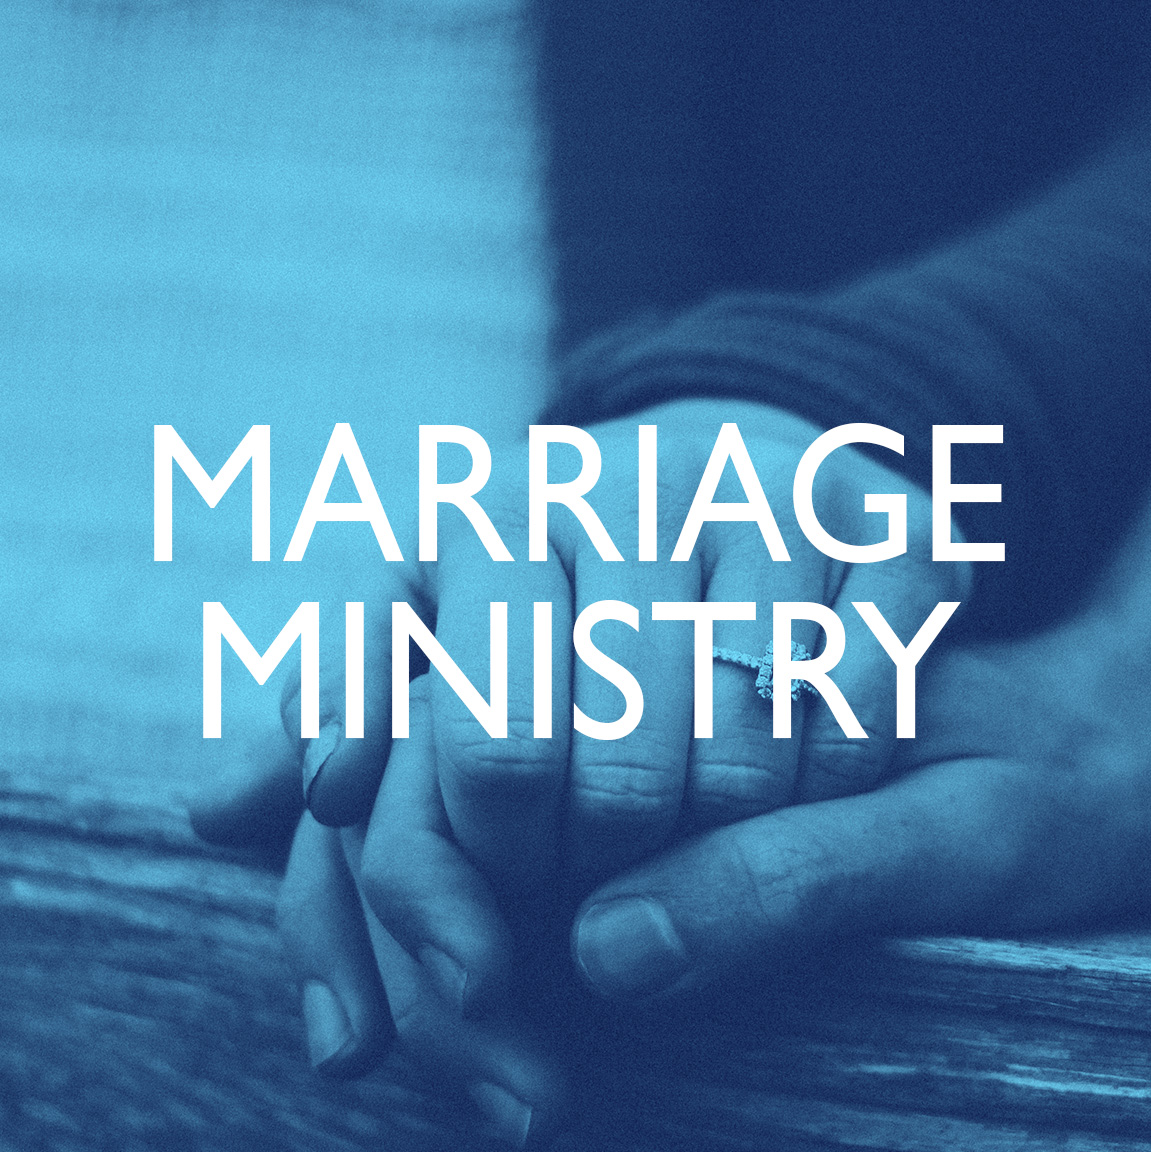 Square Images_Marriage Ministry.jpg